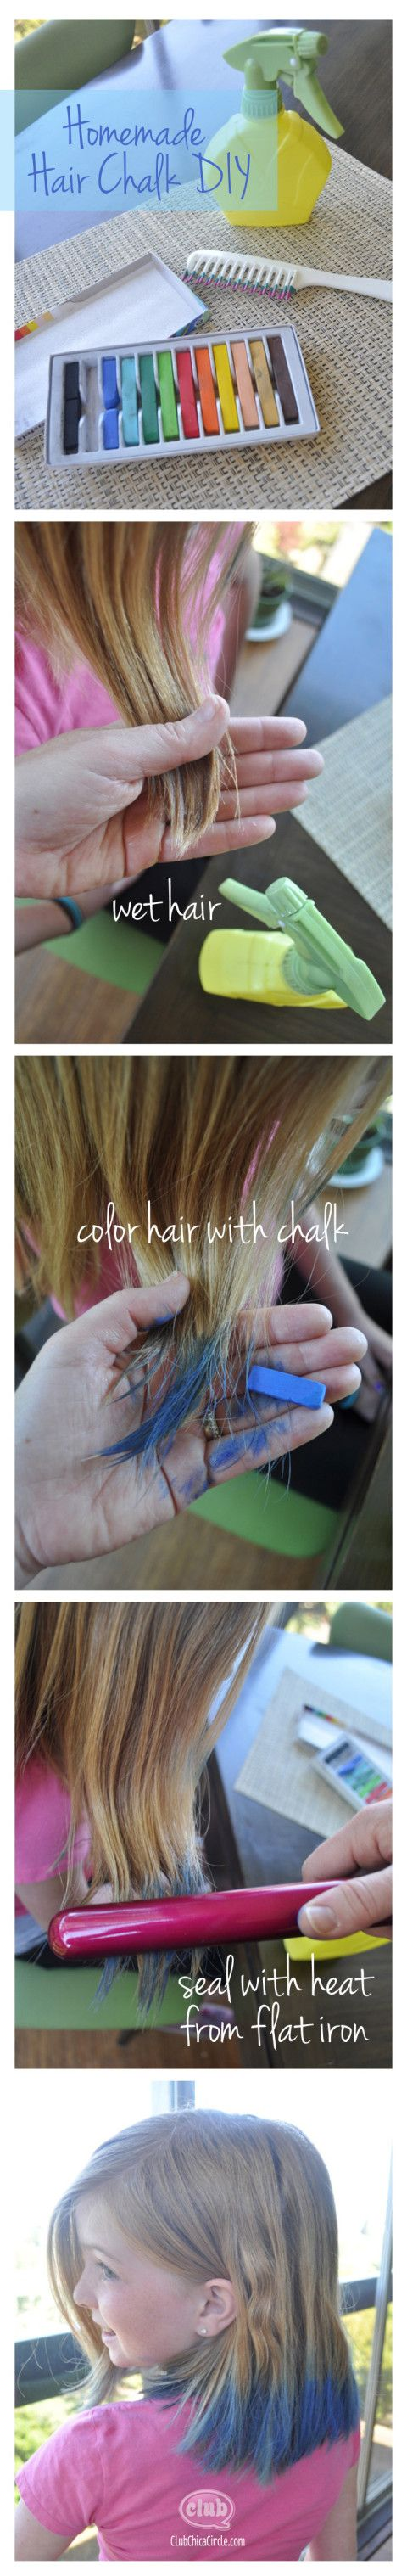 Homemade hair chalk tutorial for tweens club chica circle where